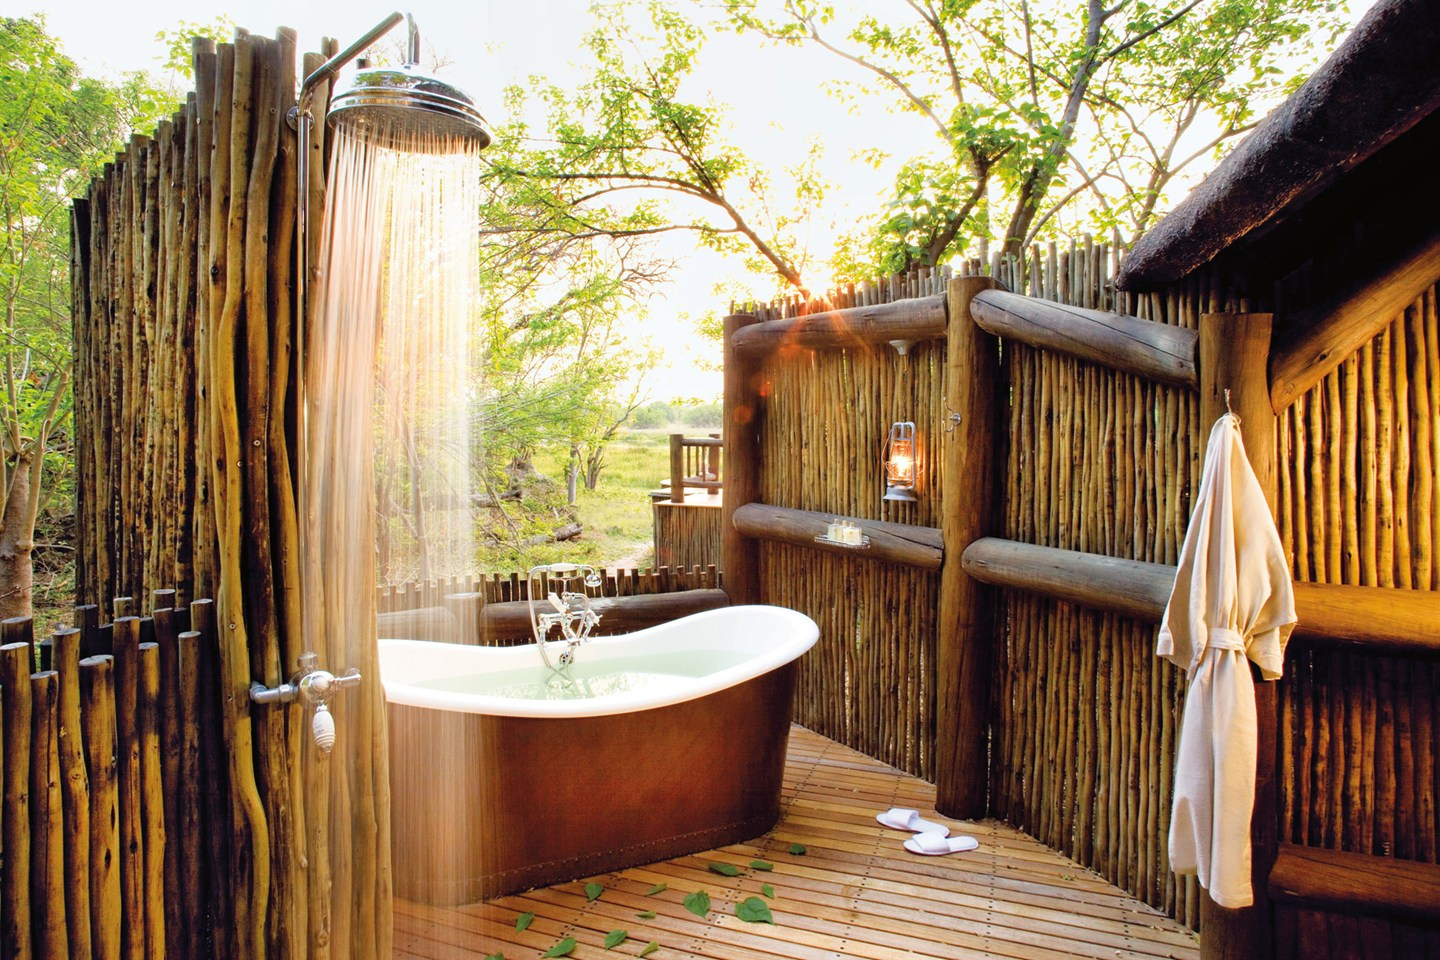 Outdoor forest tub